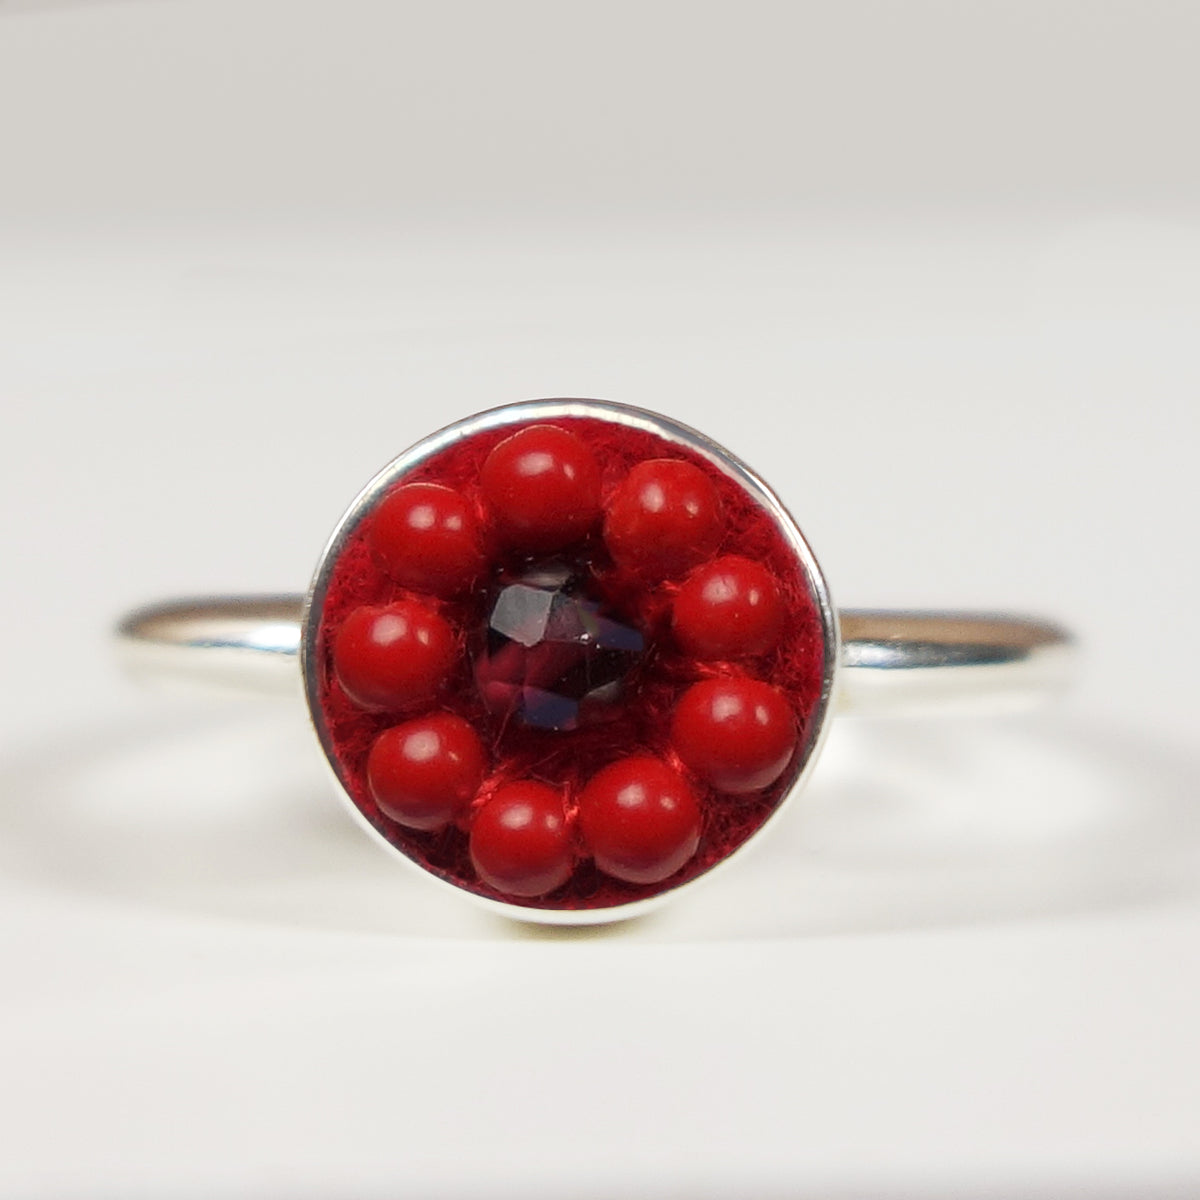 Star Spangled mosaic ring